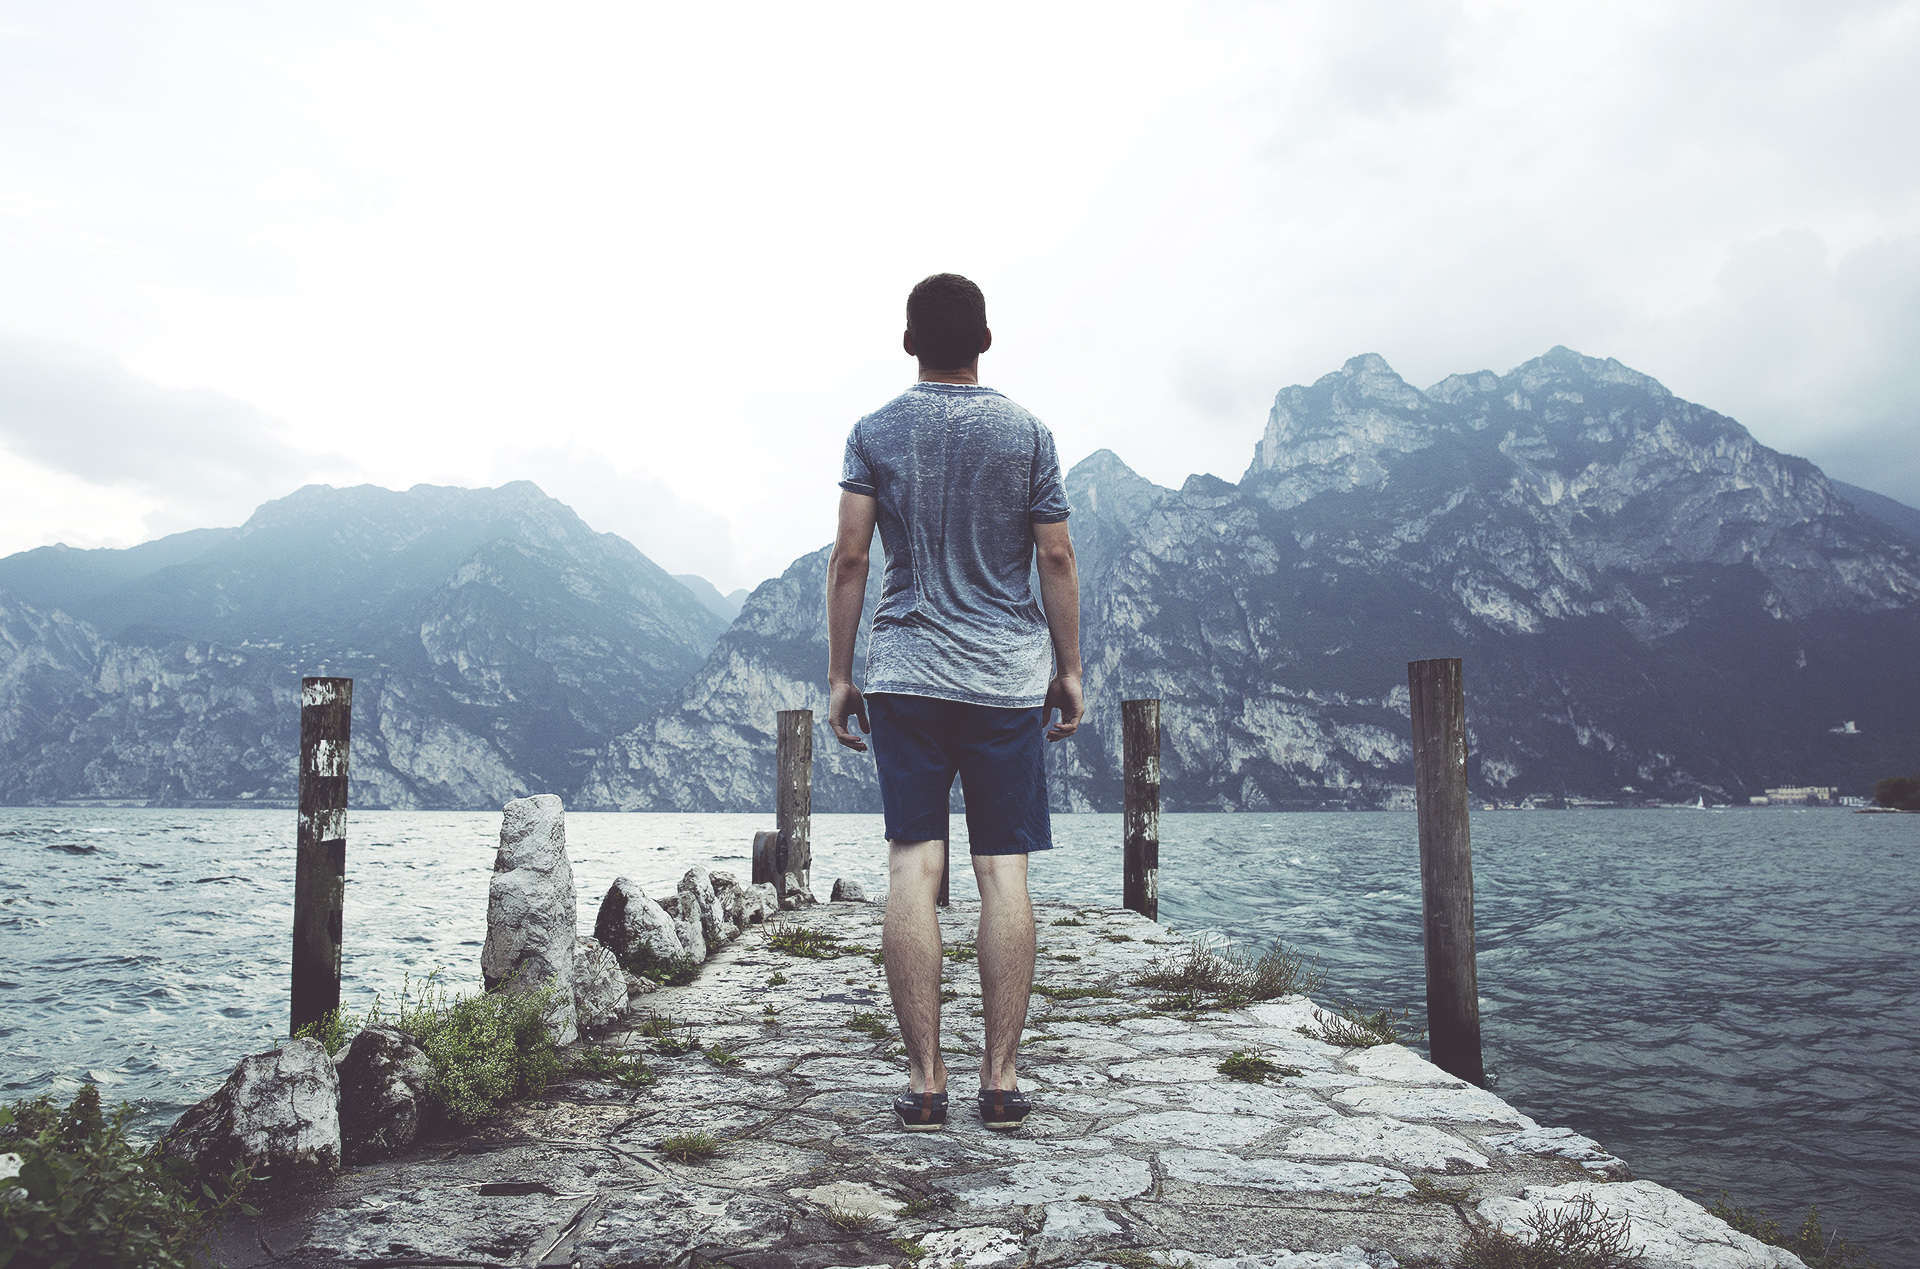 man standing on a pier overlooking water praying God will strengthen him